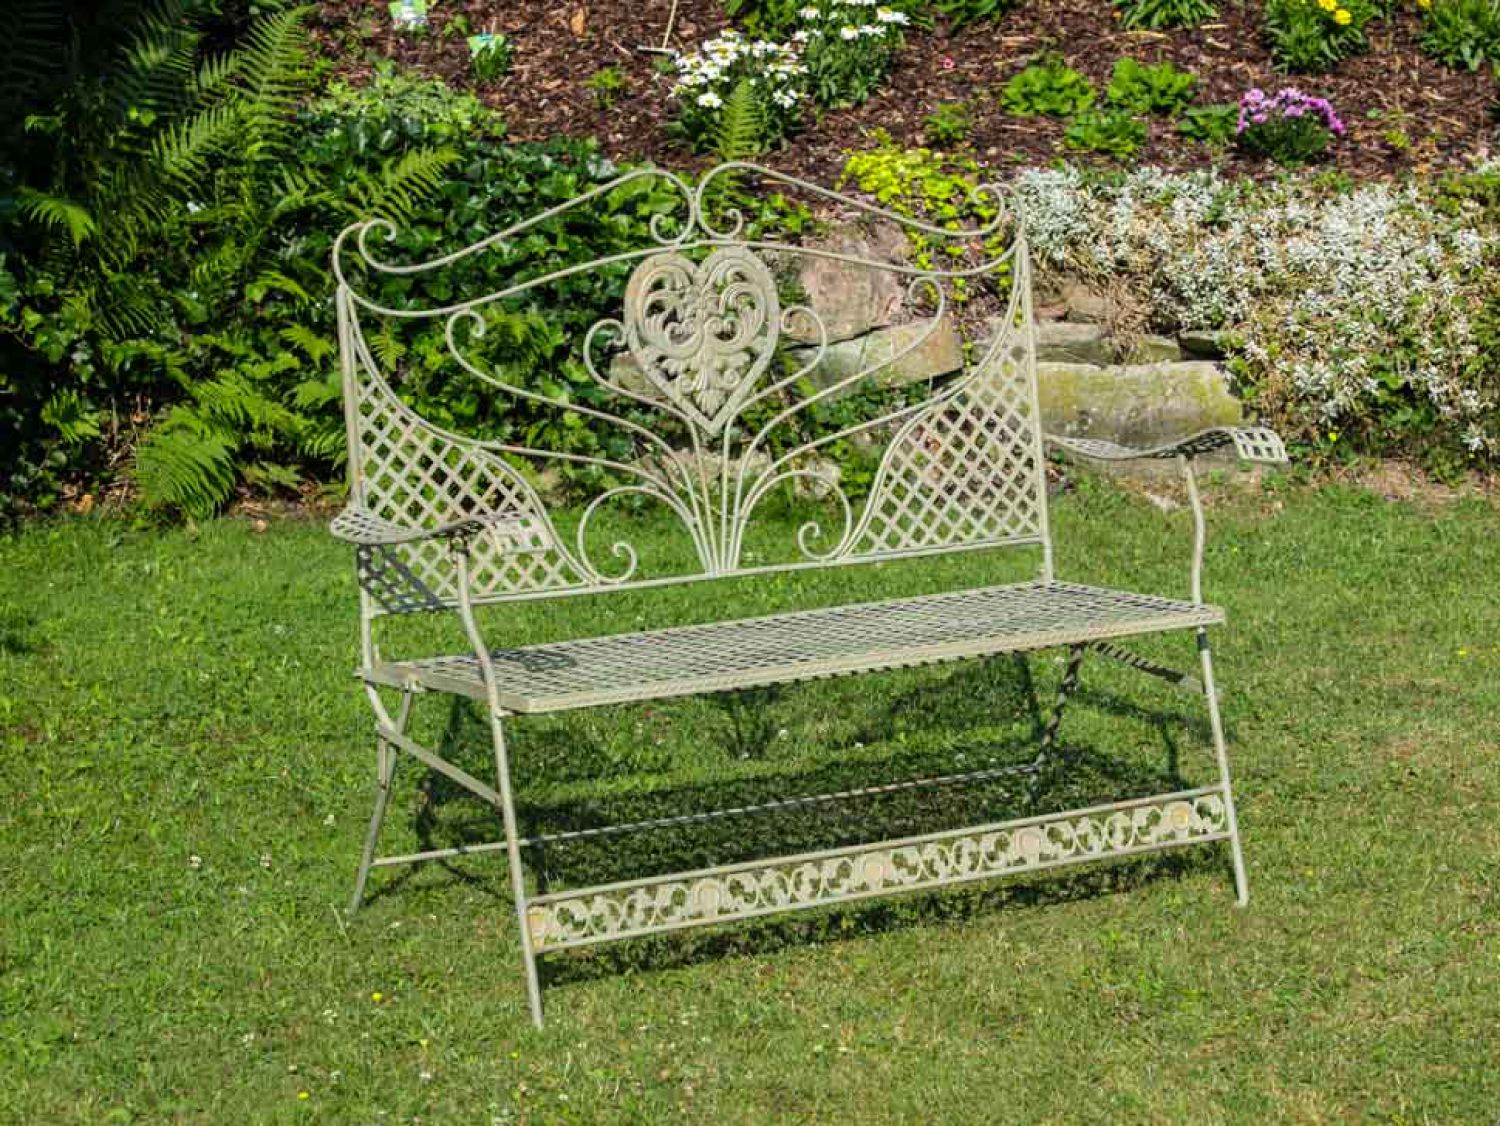 Nostalgia garden bench flowers iron antique green garden ...